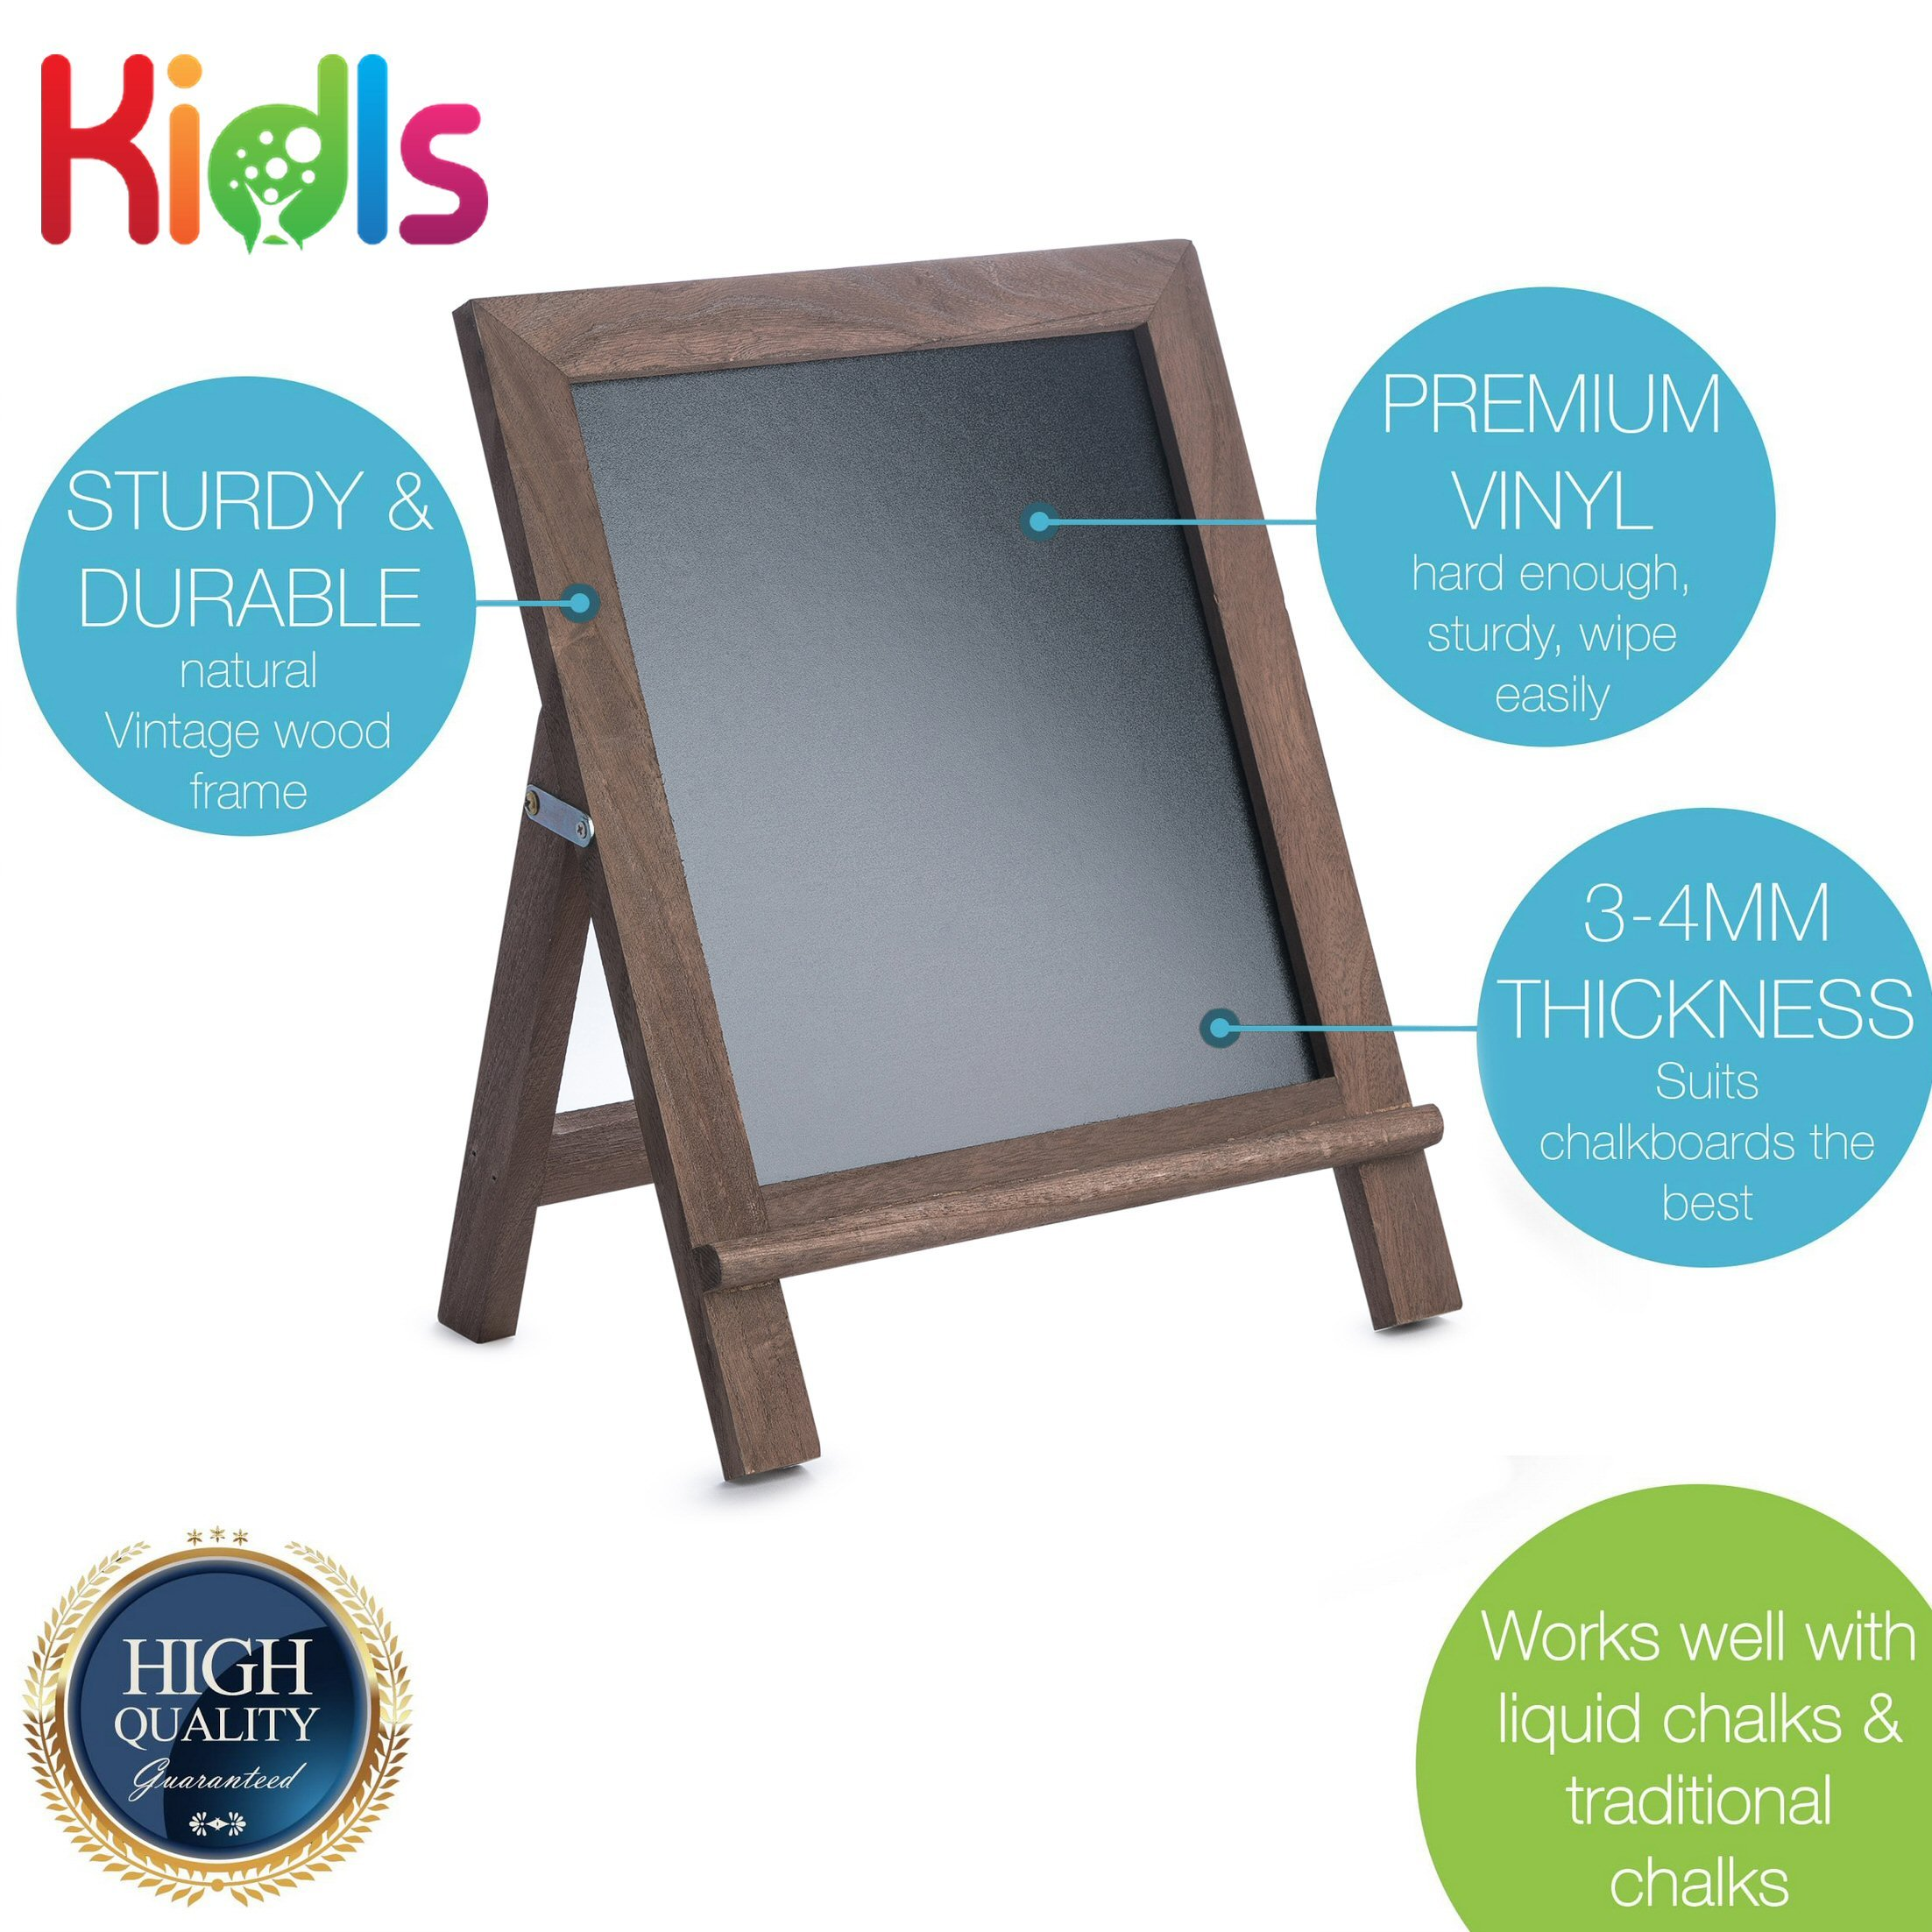 Premium Wood Framed Rustic Standing Chalkboard 12 x 16. Non-Porous Vinyl Surface. For Home, Bars, Restaurants and Weddings - for the Vintage Look! FREE BONUS: 24 chalks + Eraser + Storage Bag by KidisPro (Image #3)